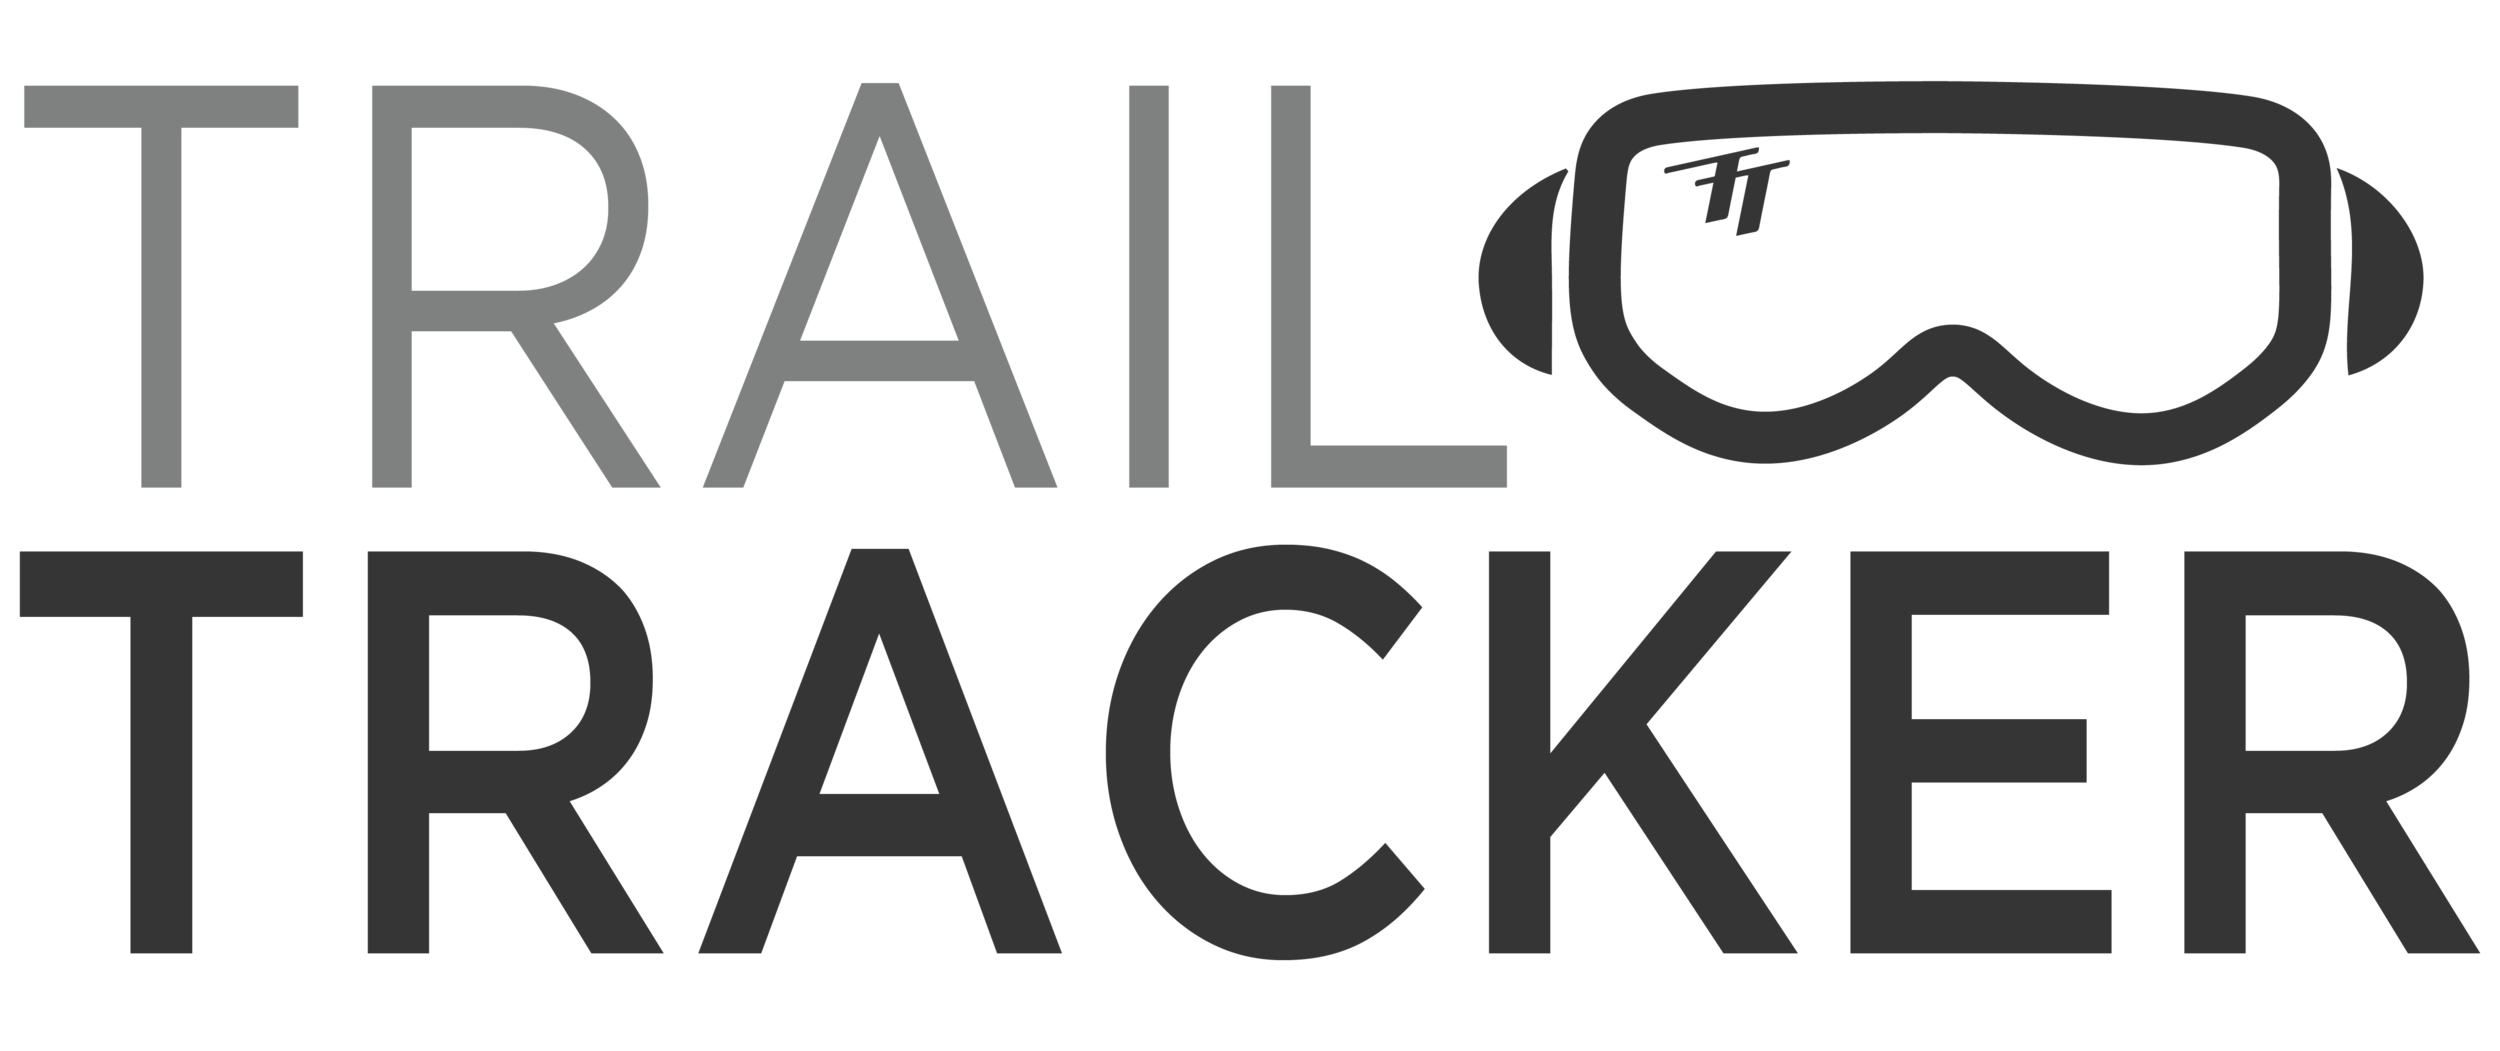 Trail Tracker Gray.png